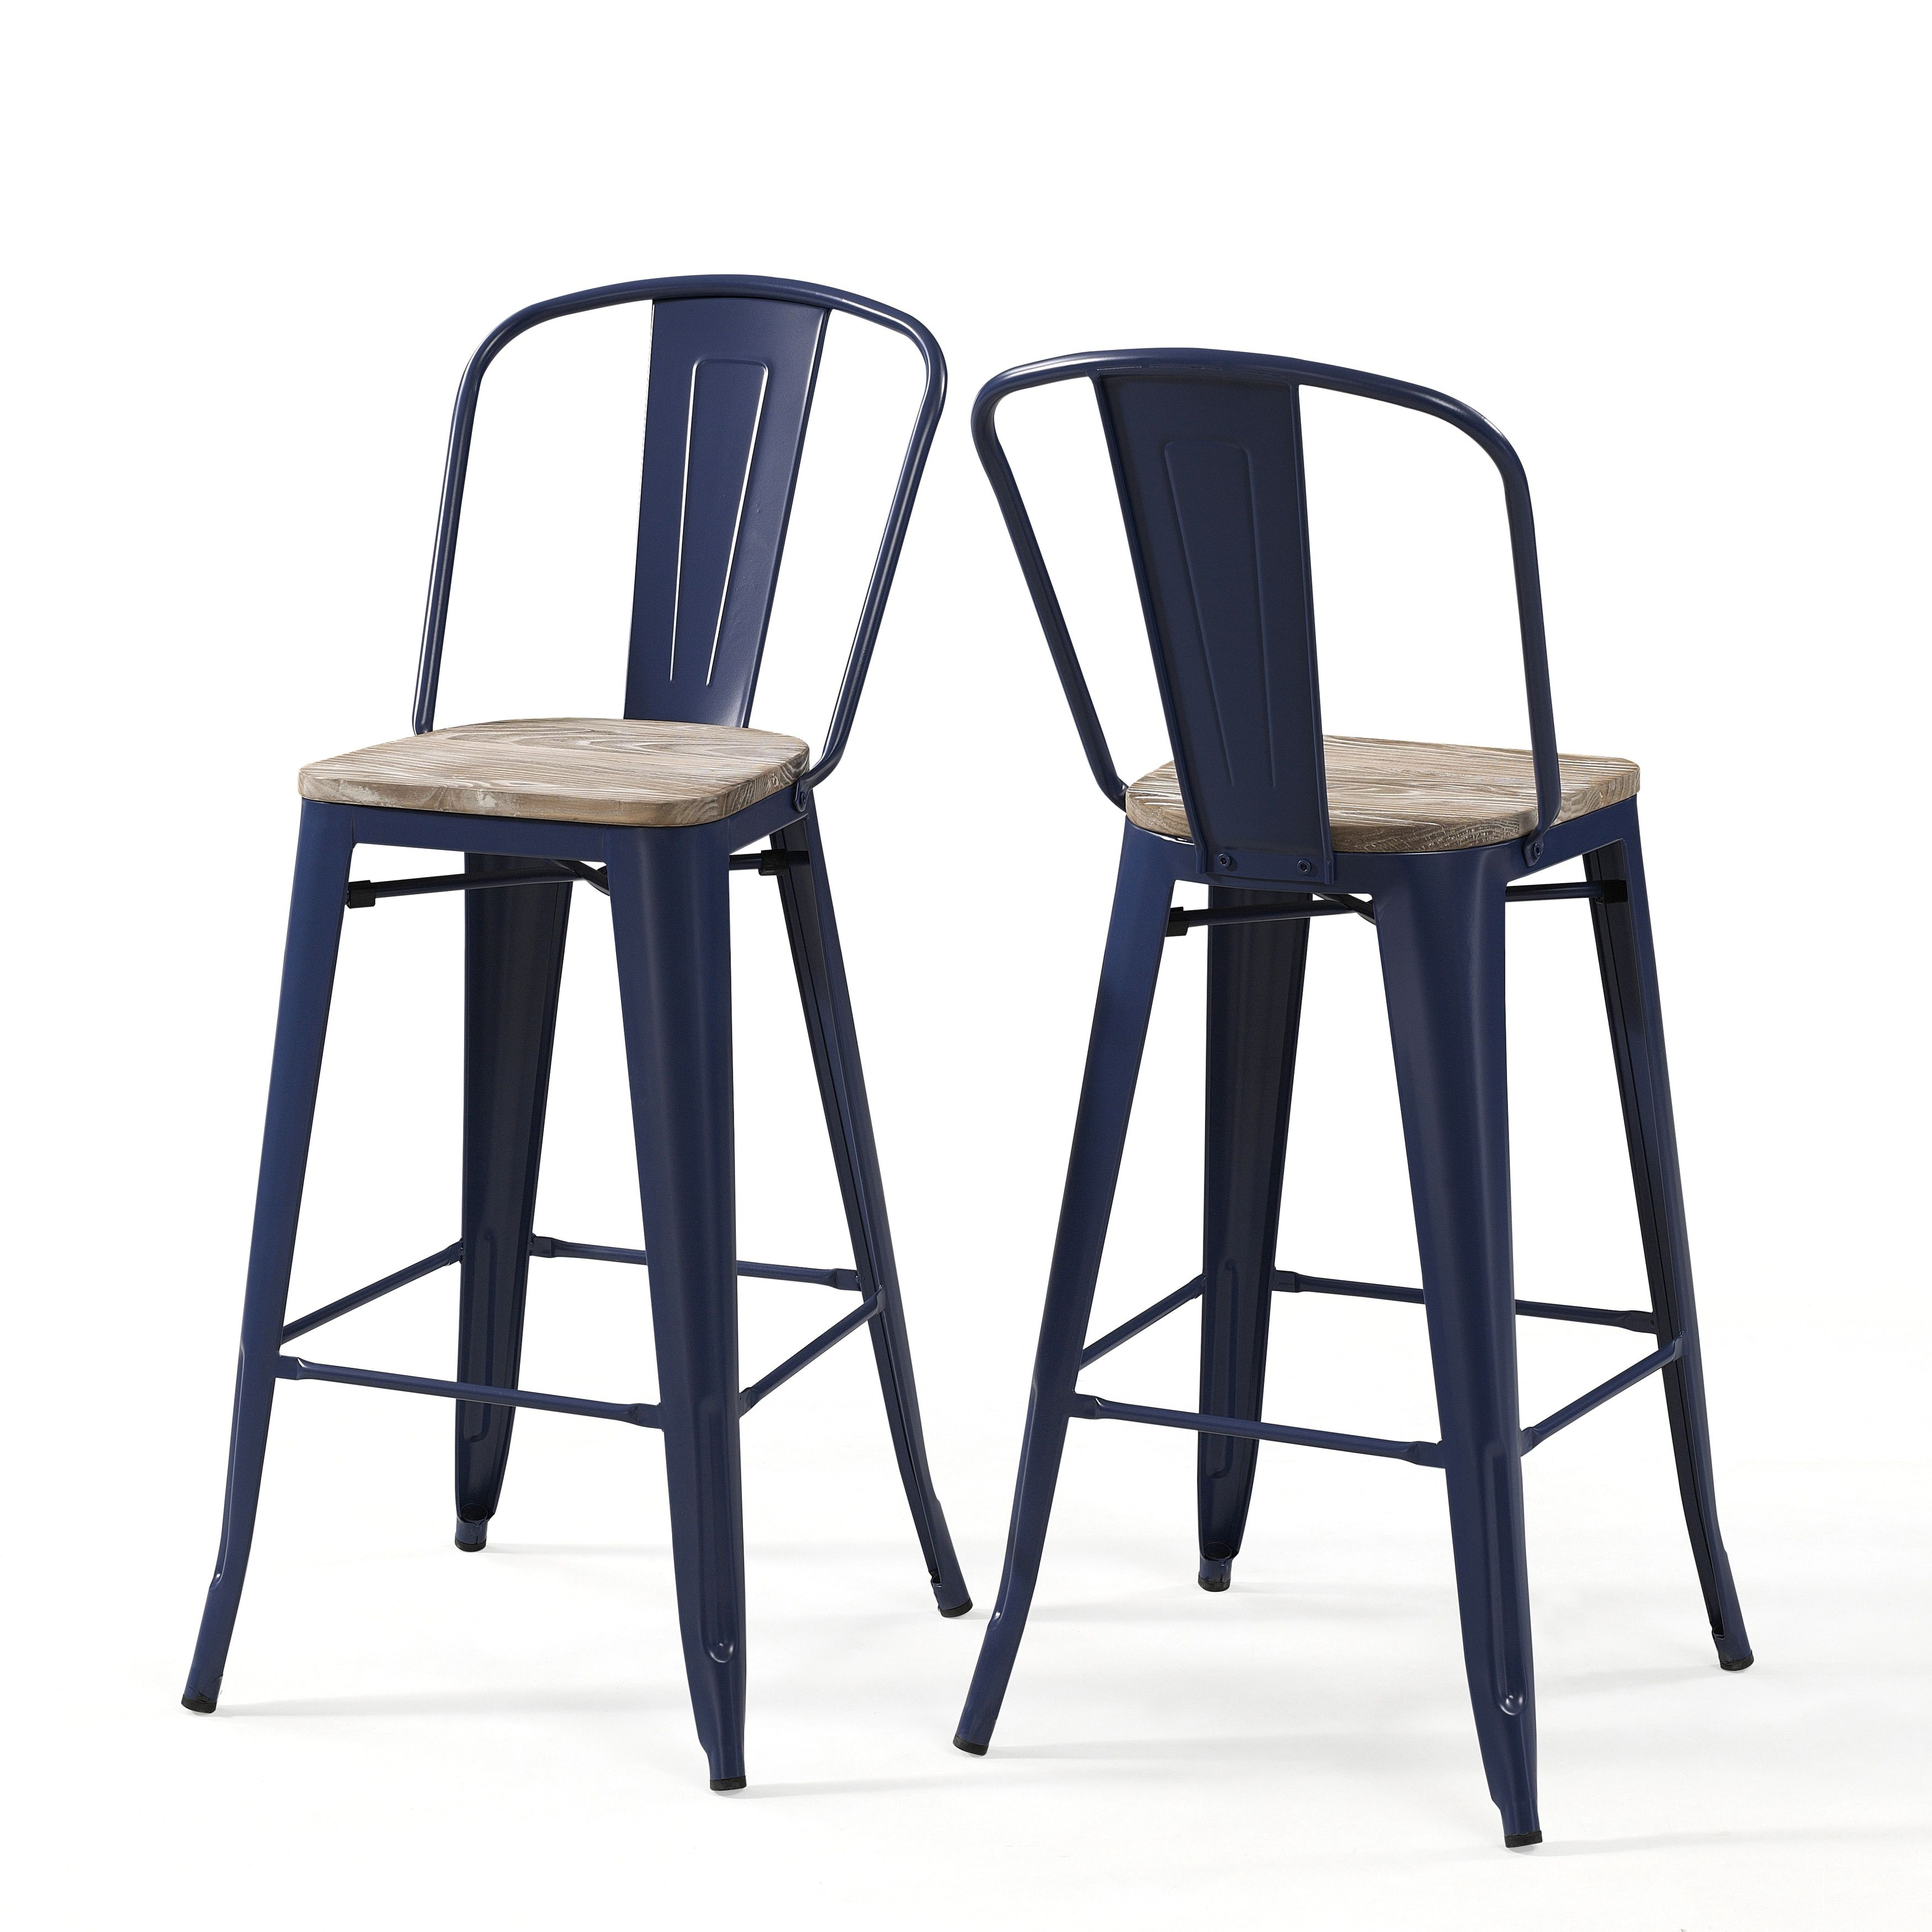 Tabourets Walmart Tabouret Bistro Wood Seat Navy Blue Bar Stools Set Of 2 Metal